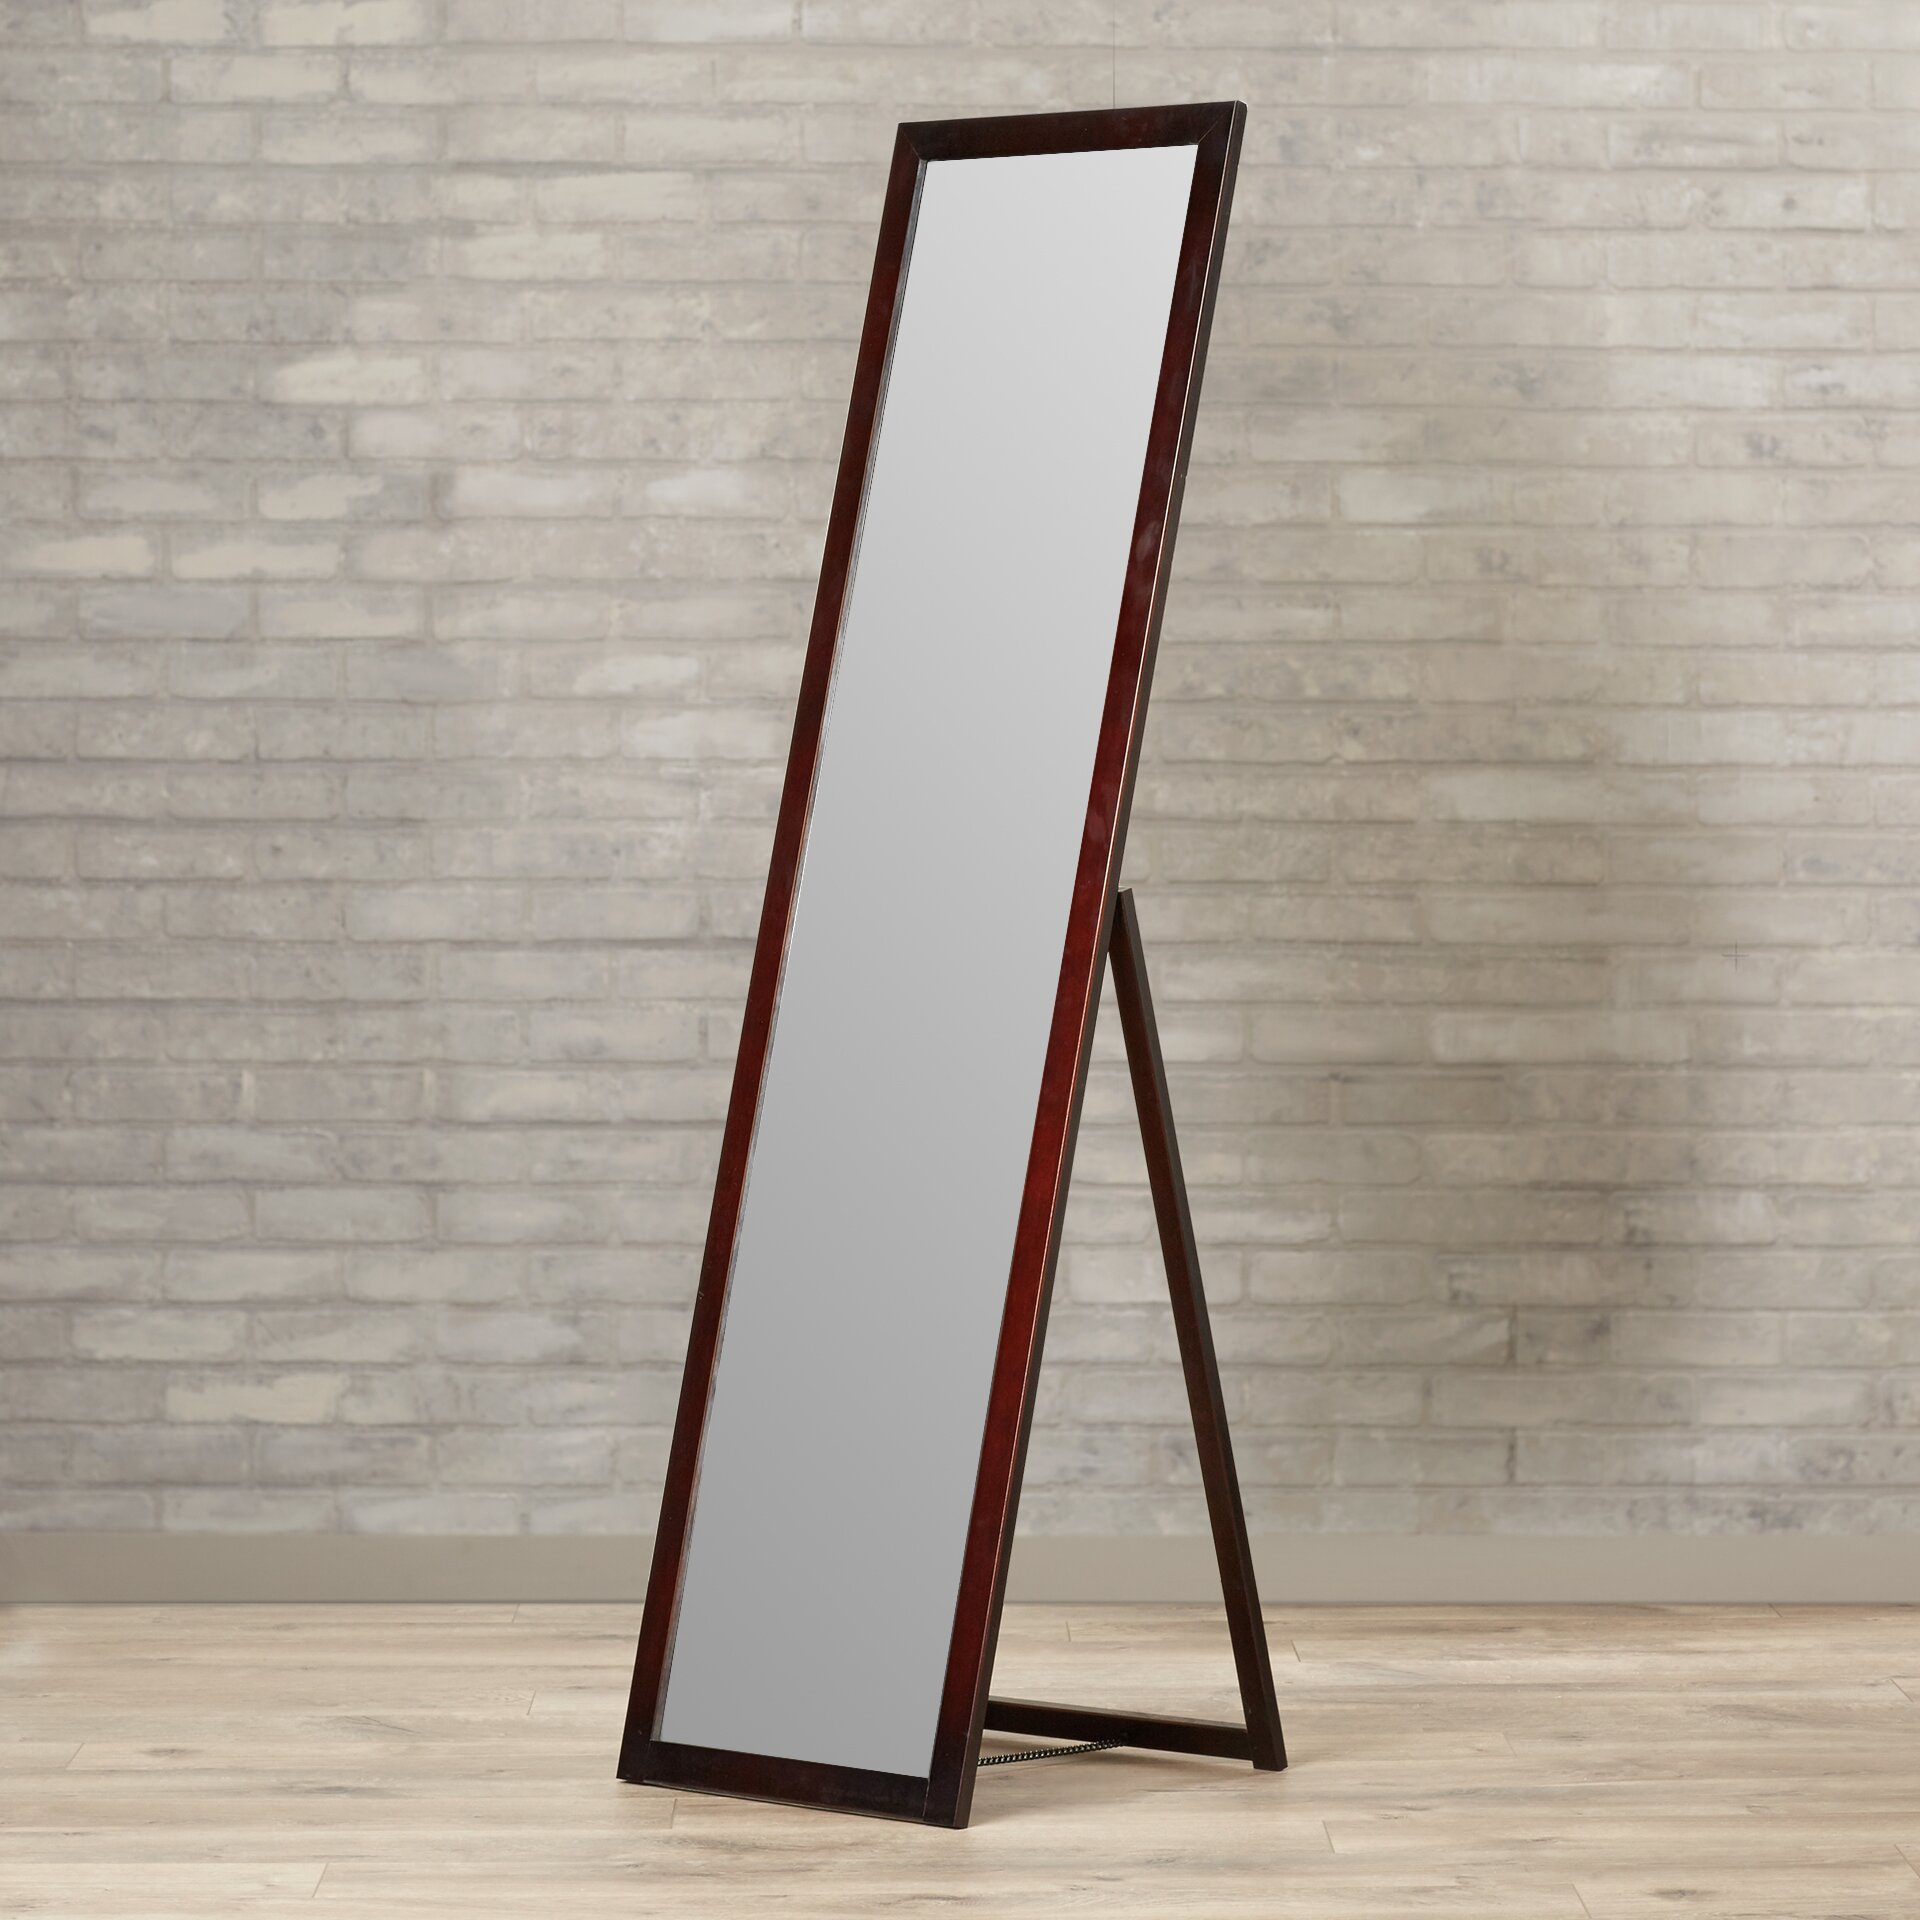 Varick gallery galeton full length stand mirror reviews for Full length window mirror